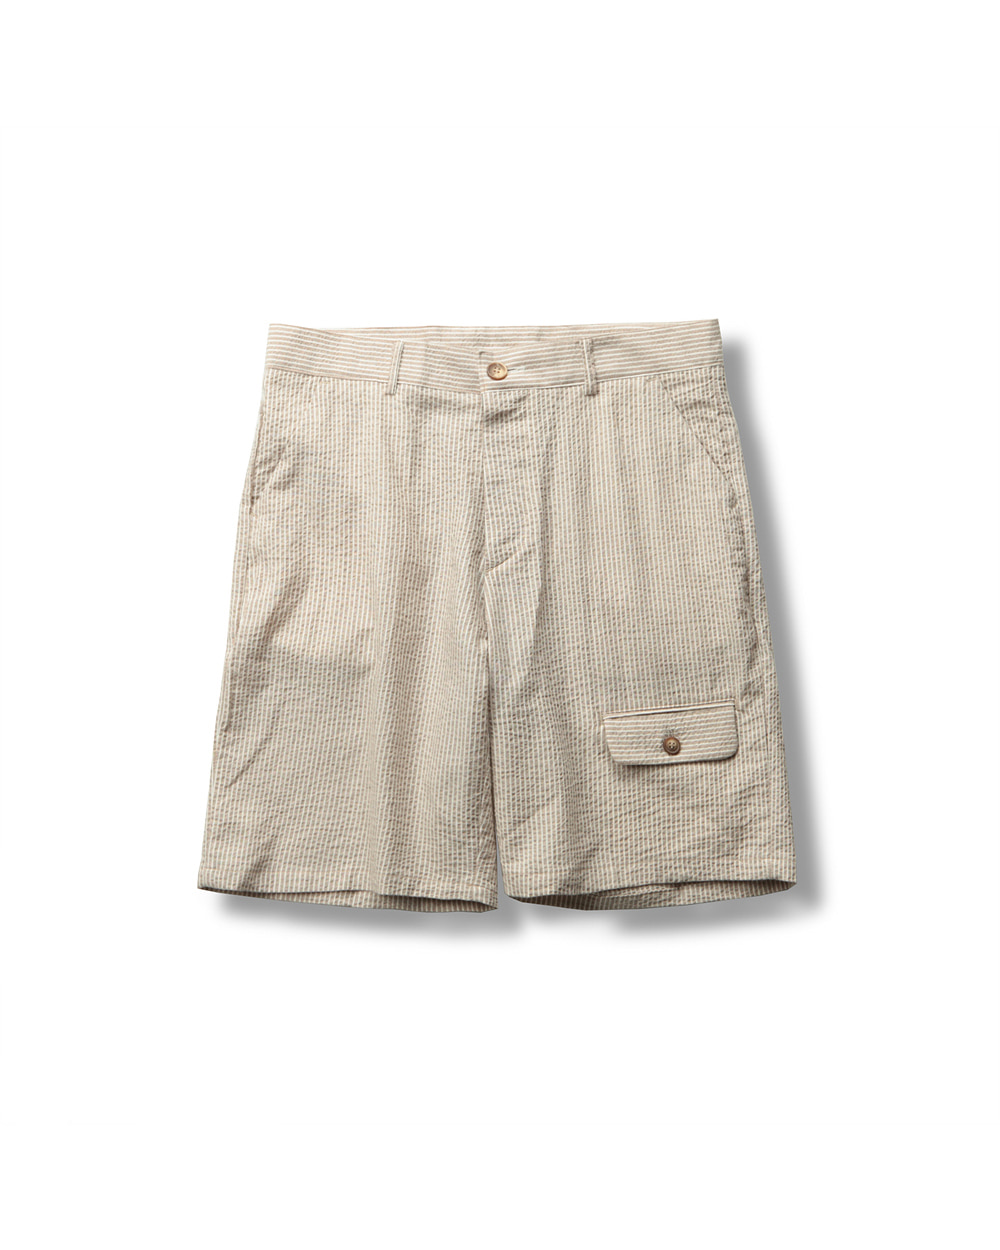 SEERSUCKER HALF PANTS BROWN